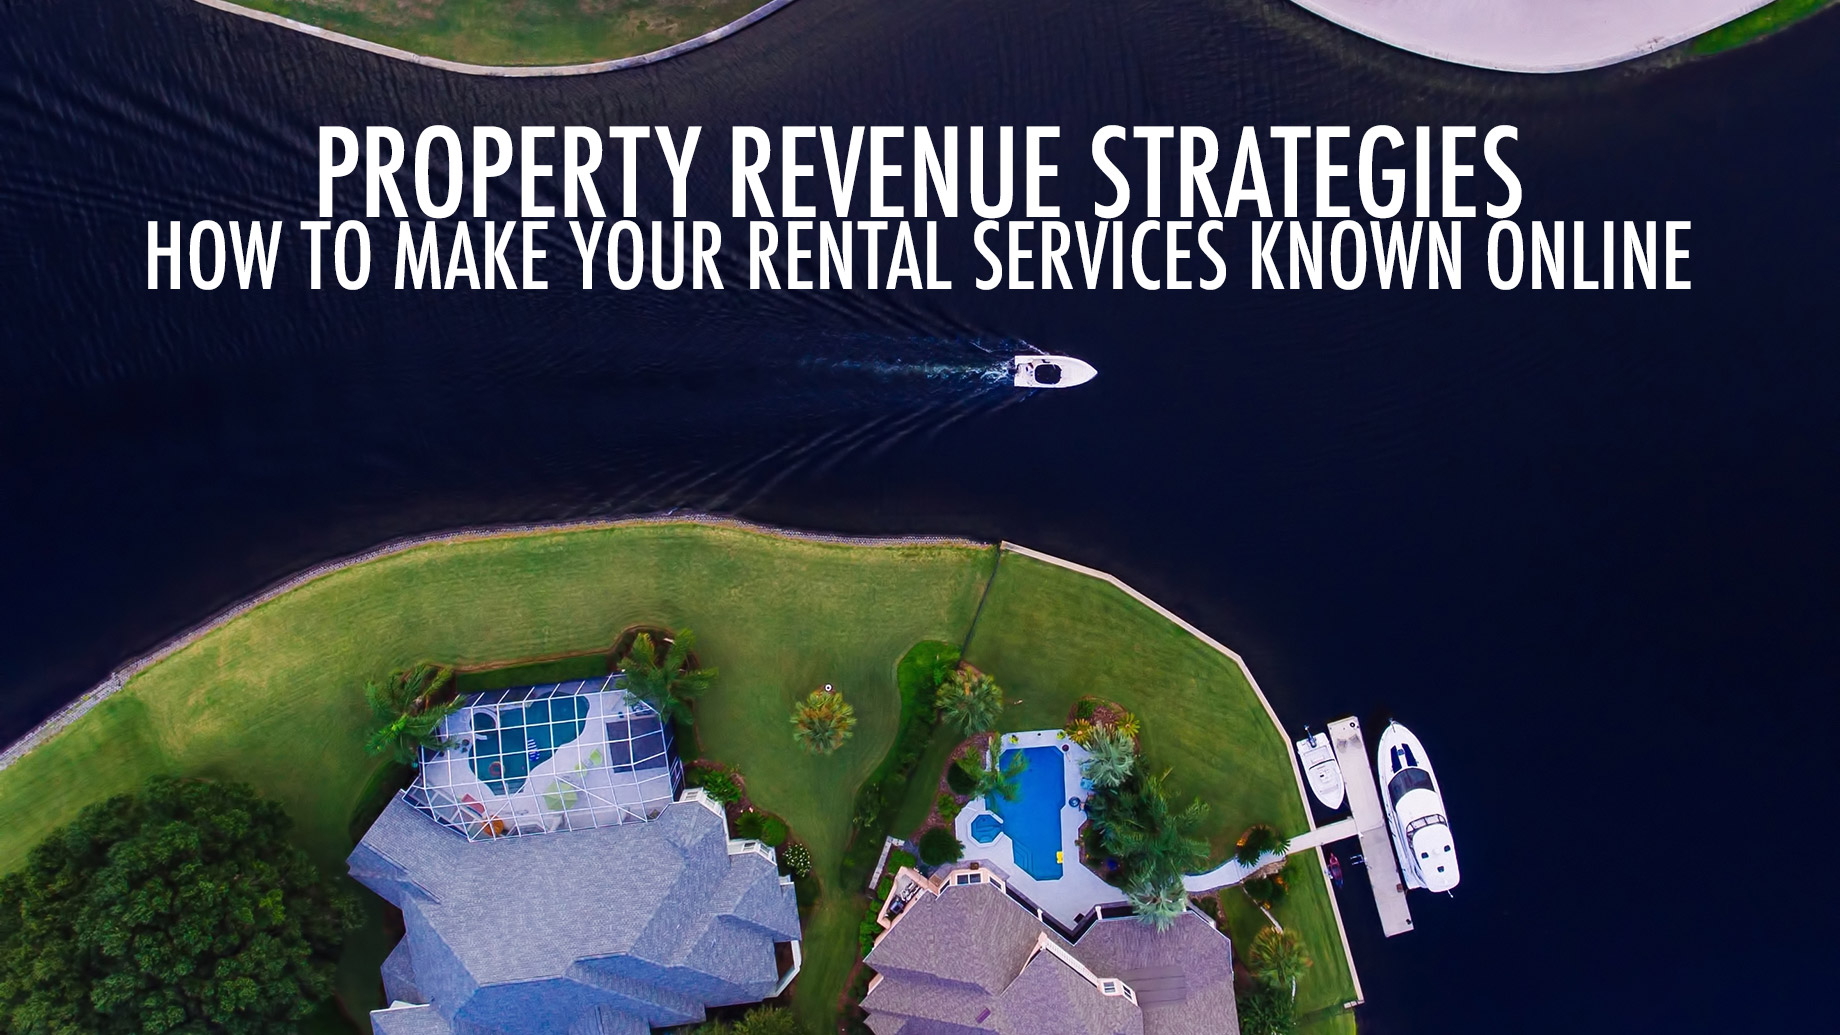 Property Revenue Strategies - How to Make Your Rental Services Known Online